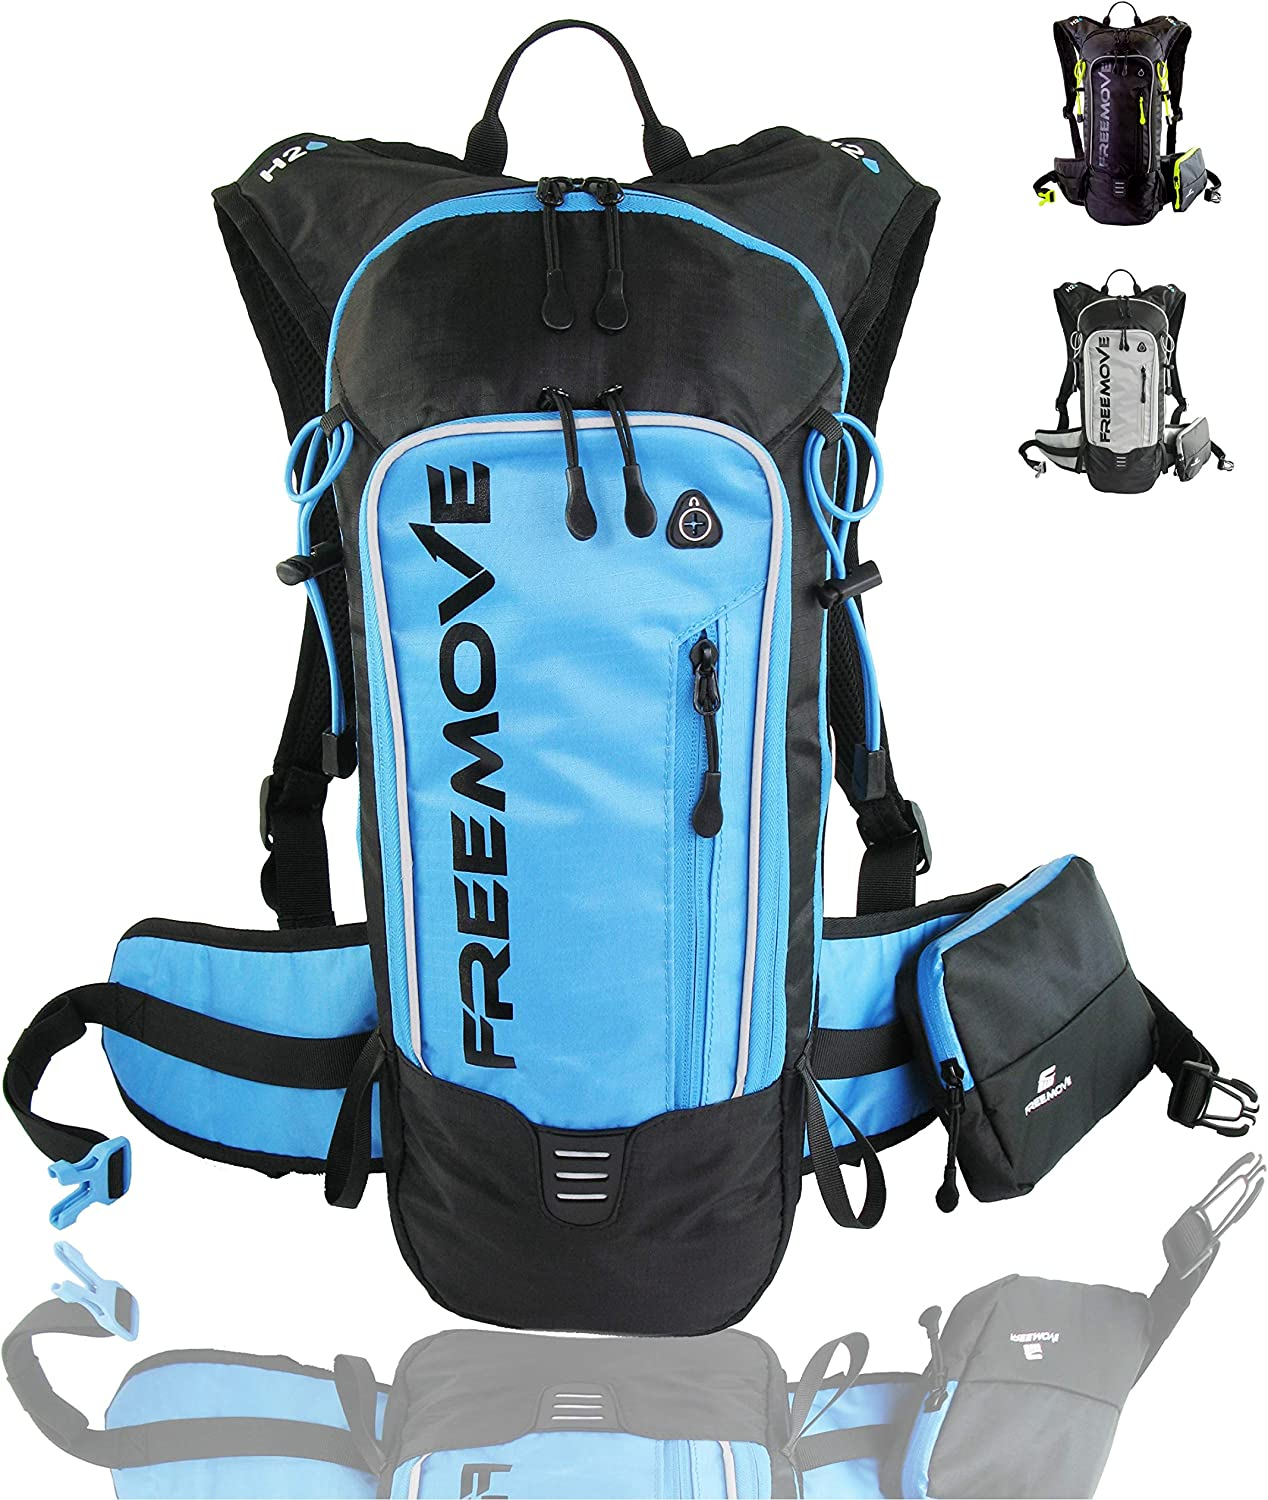 Lightweight Cycling Running Fully Adjustable MTB Leakproof Multiple Pockets 10L Capacity Camel Pack Gear for Day Hiking FREEMOVE Hydration Pack Backpack with 2 Liter Water Bladder and Cooler Bag